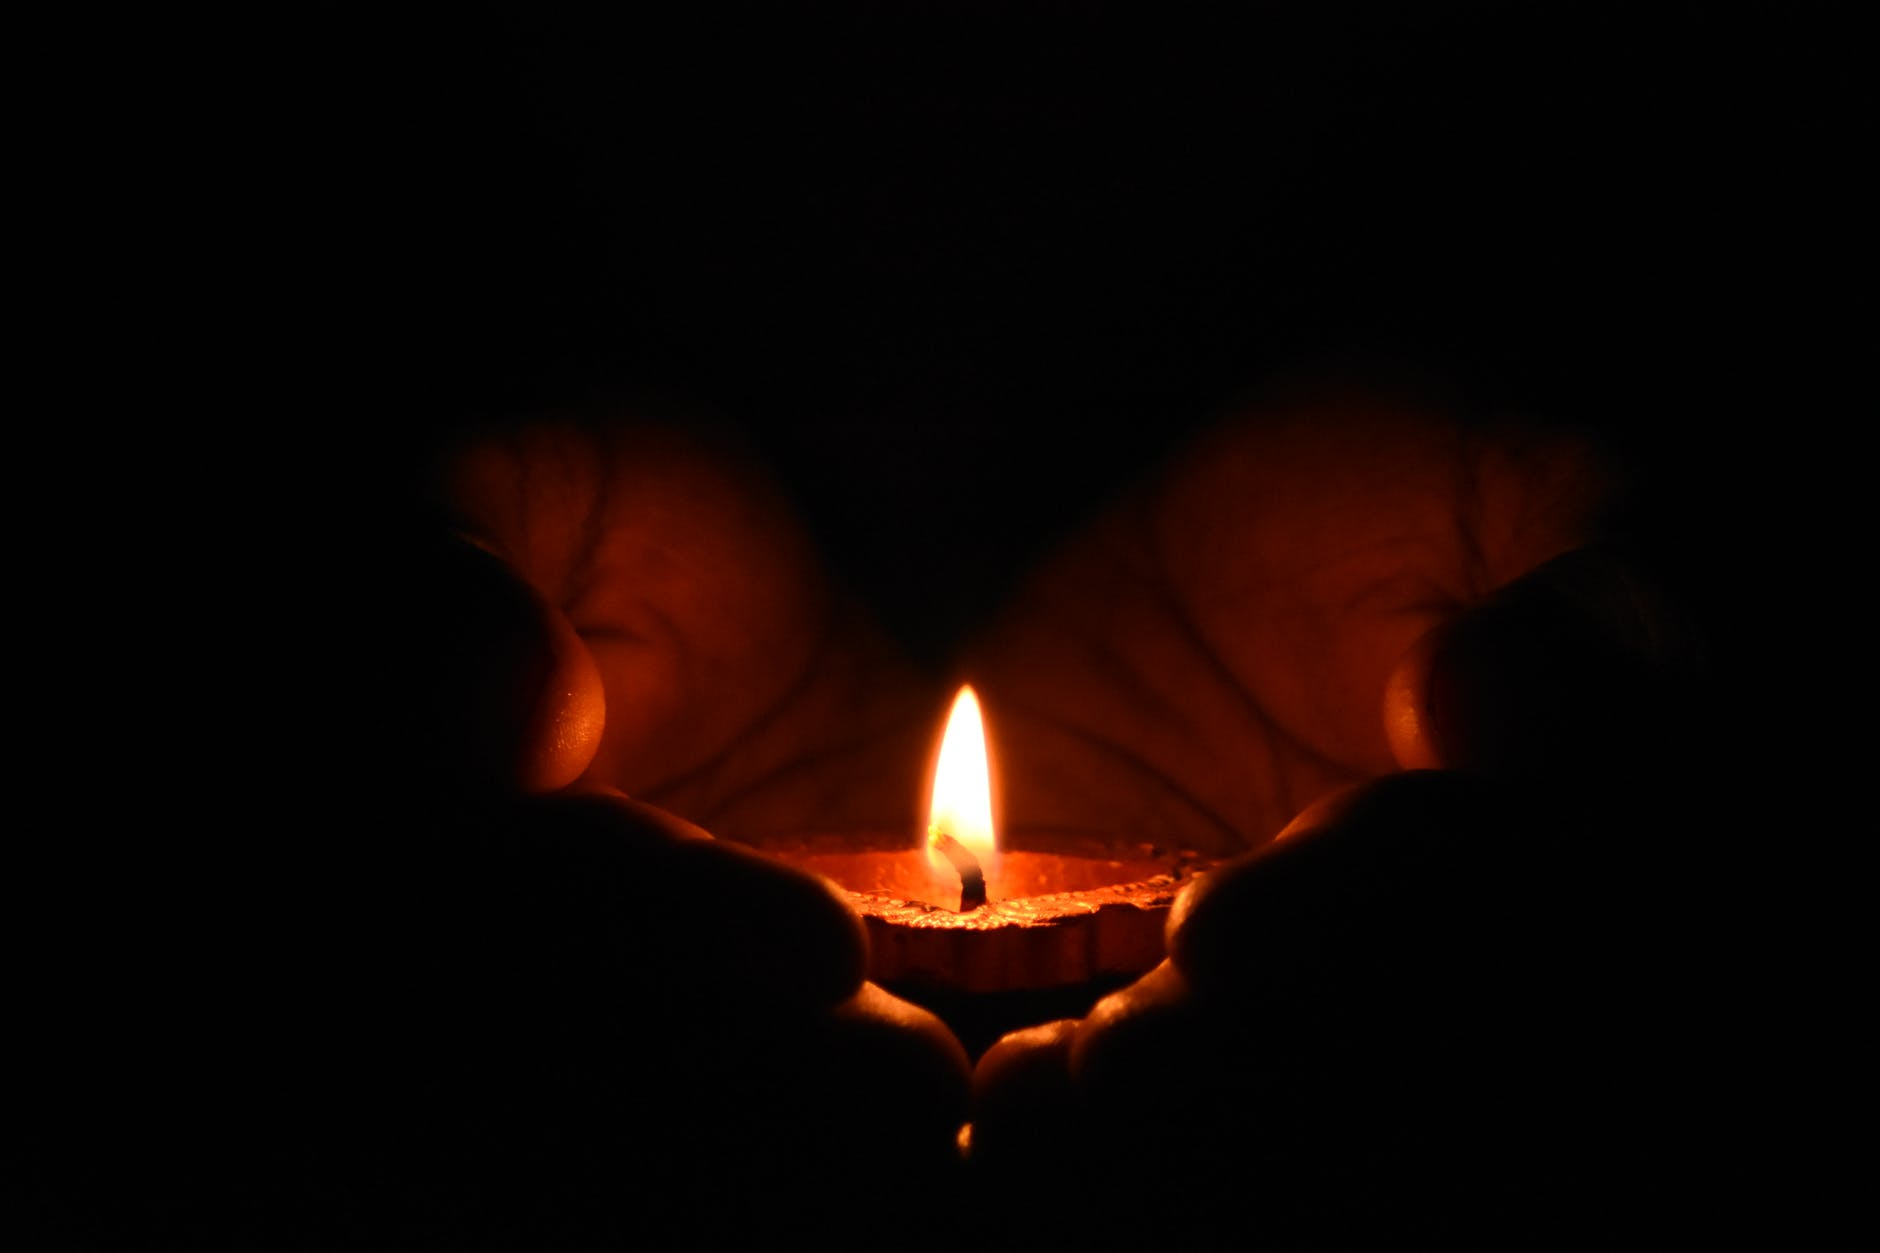 A candle held in cupped hands. The flame from the candle is the only light, casting shadow other than the skin touched by the flame's light.